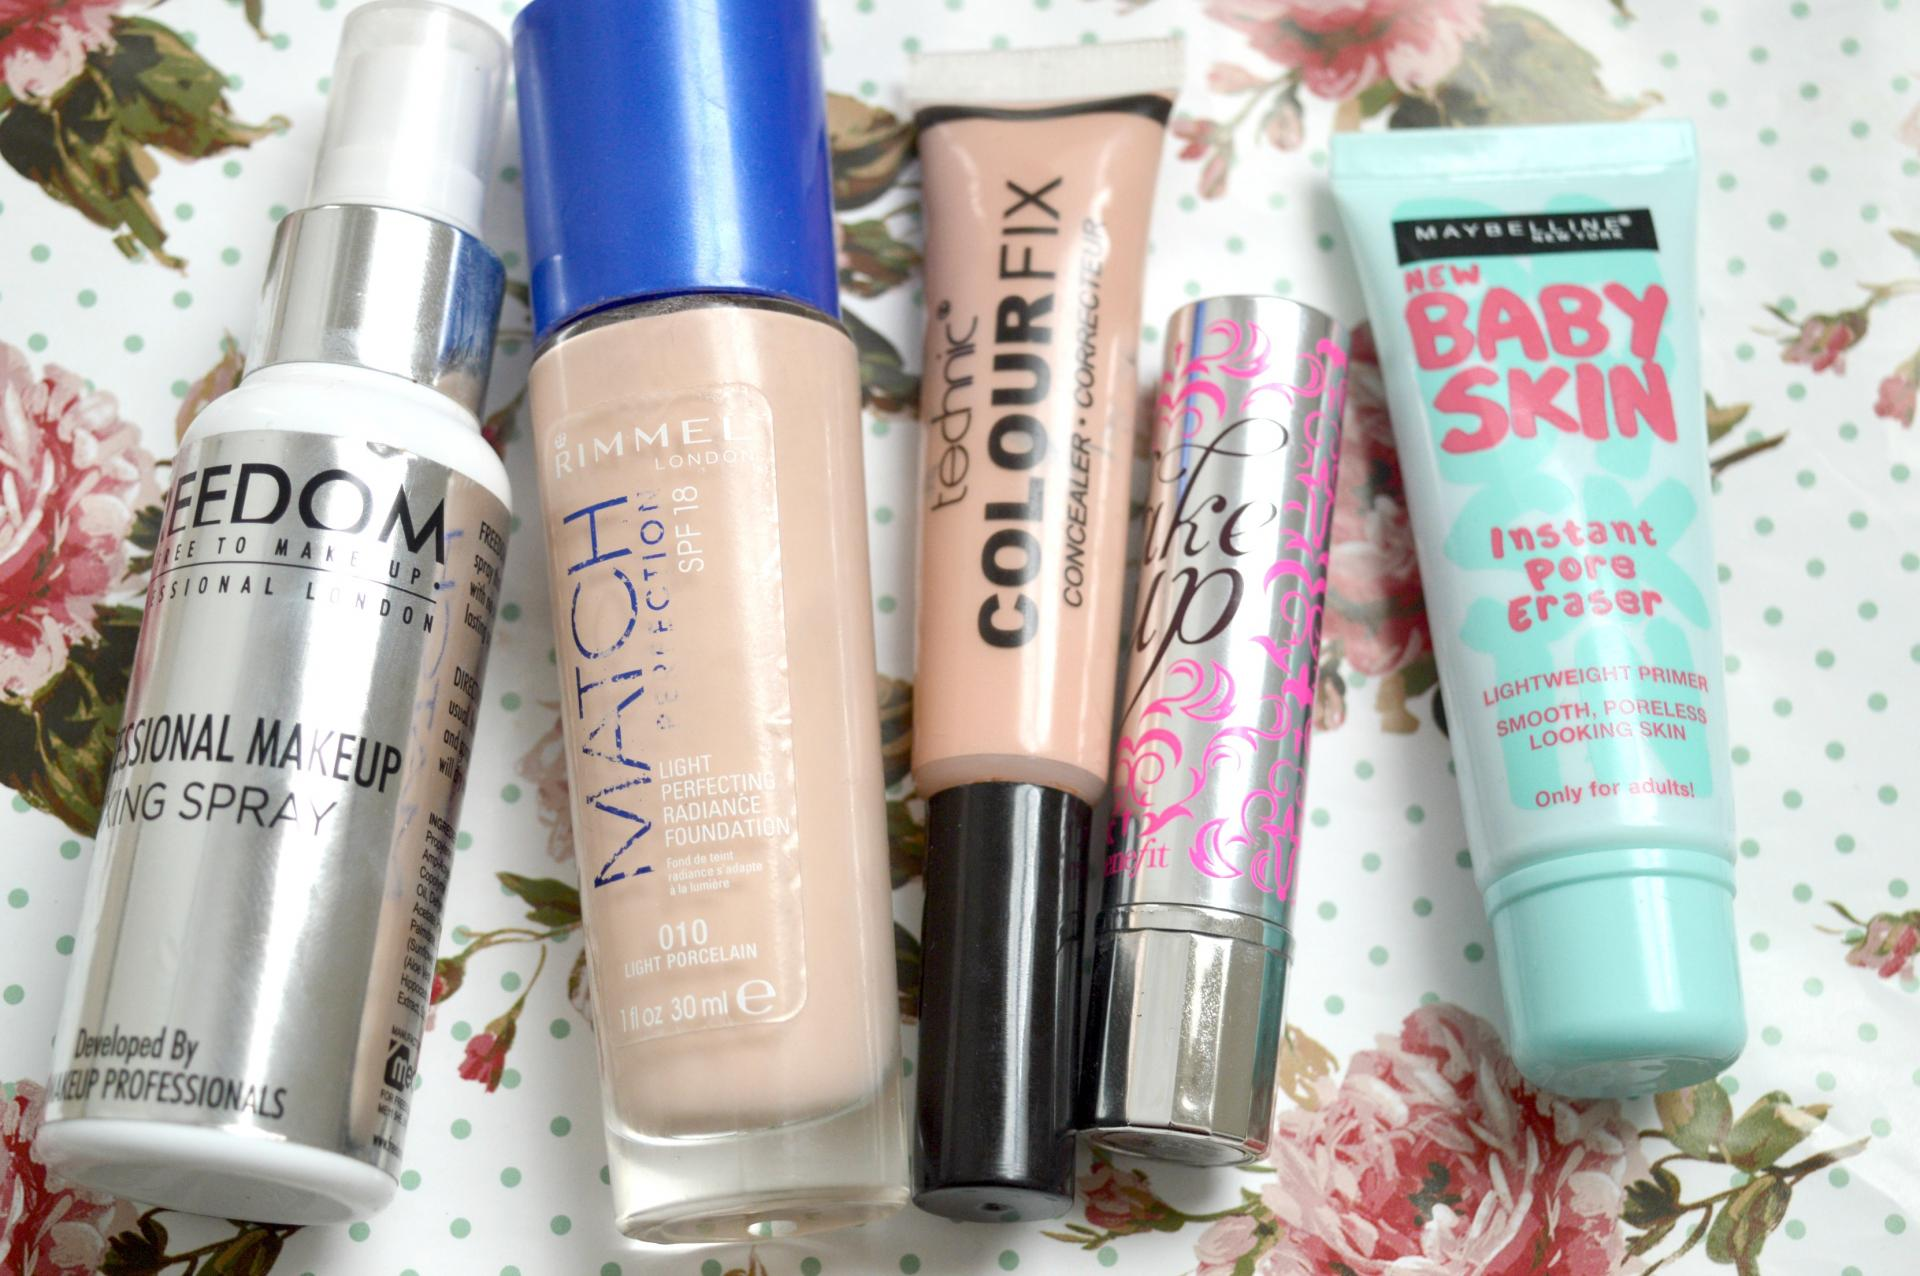 5 Fantastic Complexion Products That I Always Reach For | Freedom Professional Makeup Fixing Spray, Rimmel Match Perfection Foundation, Technic Colour Fix Concealer, Benefit Fakeup Concealer and Maybelline Baby Skin Instant Pore Eraser Primer